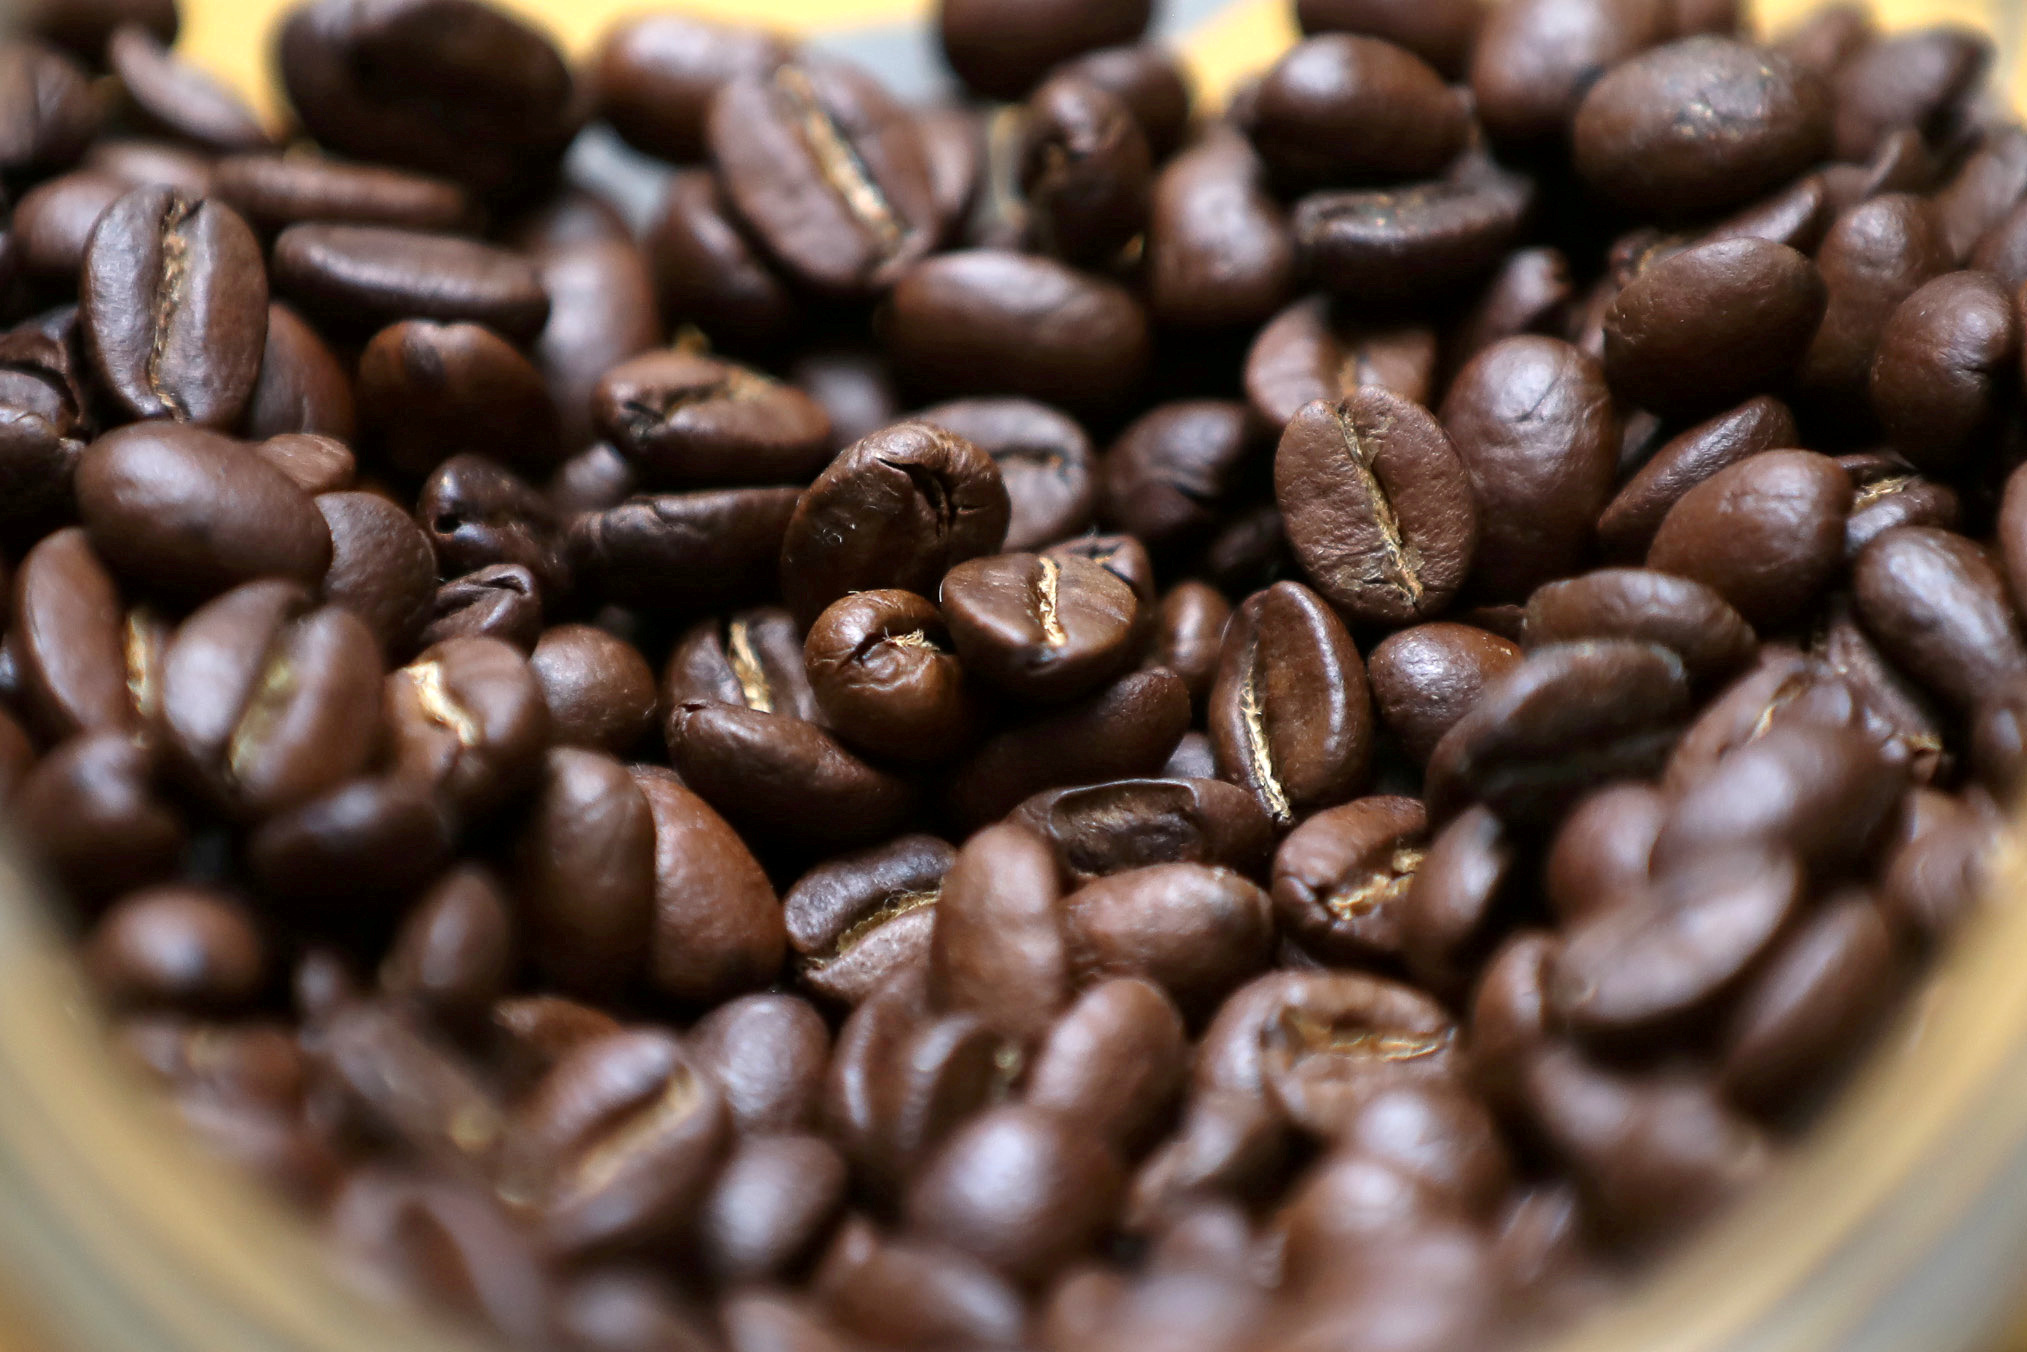 Roasted coffee beans are seen on display at a Juan Valdez store in Bogota, Colombia June 5, 2019. REUTERS/Luisa Gonzalez/File Photo